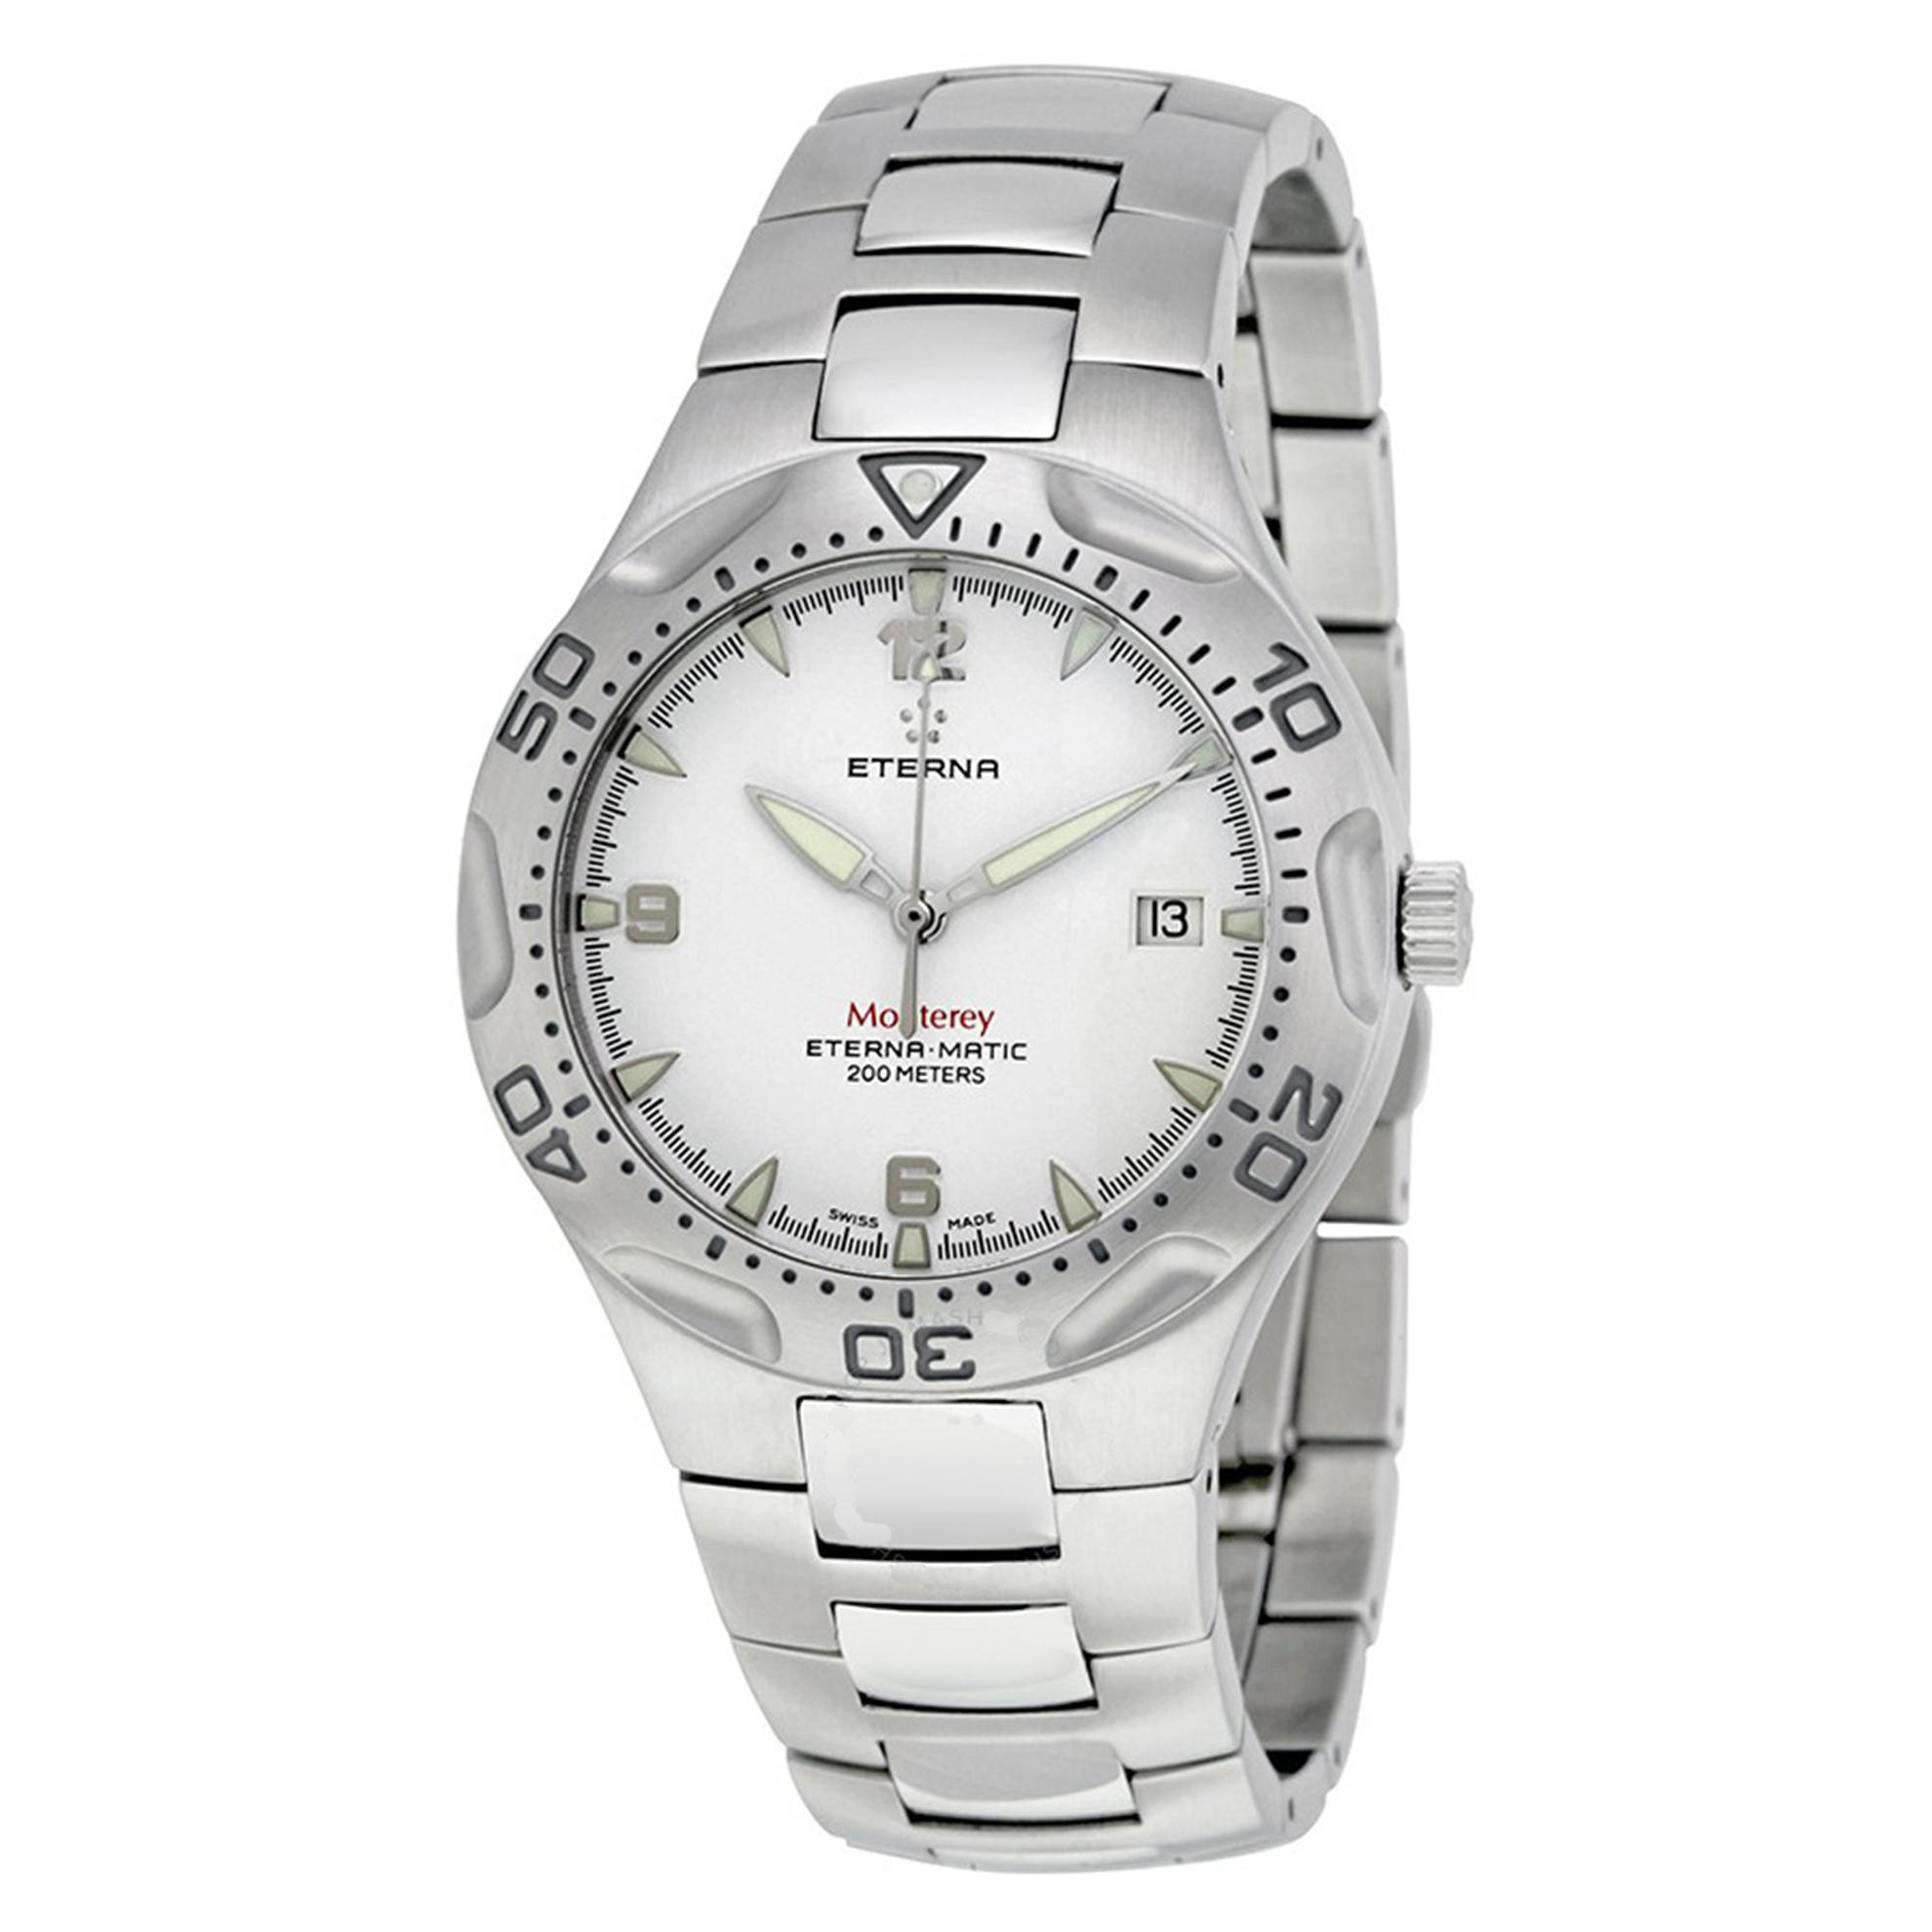 1610.41.10.0165 Eterna Monterey Swiss Made Automatic Silver DIal